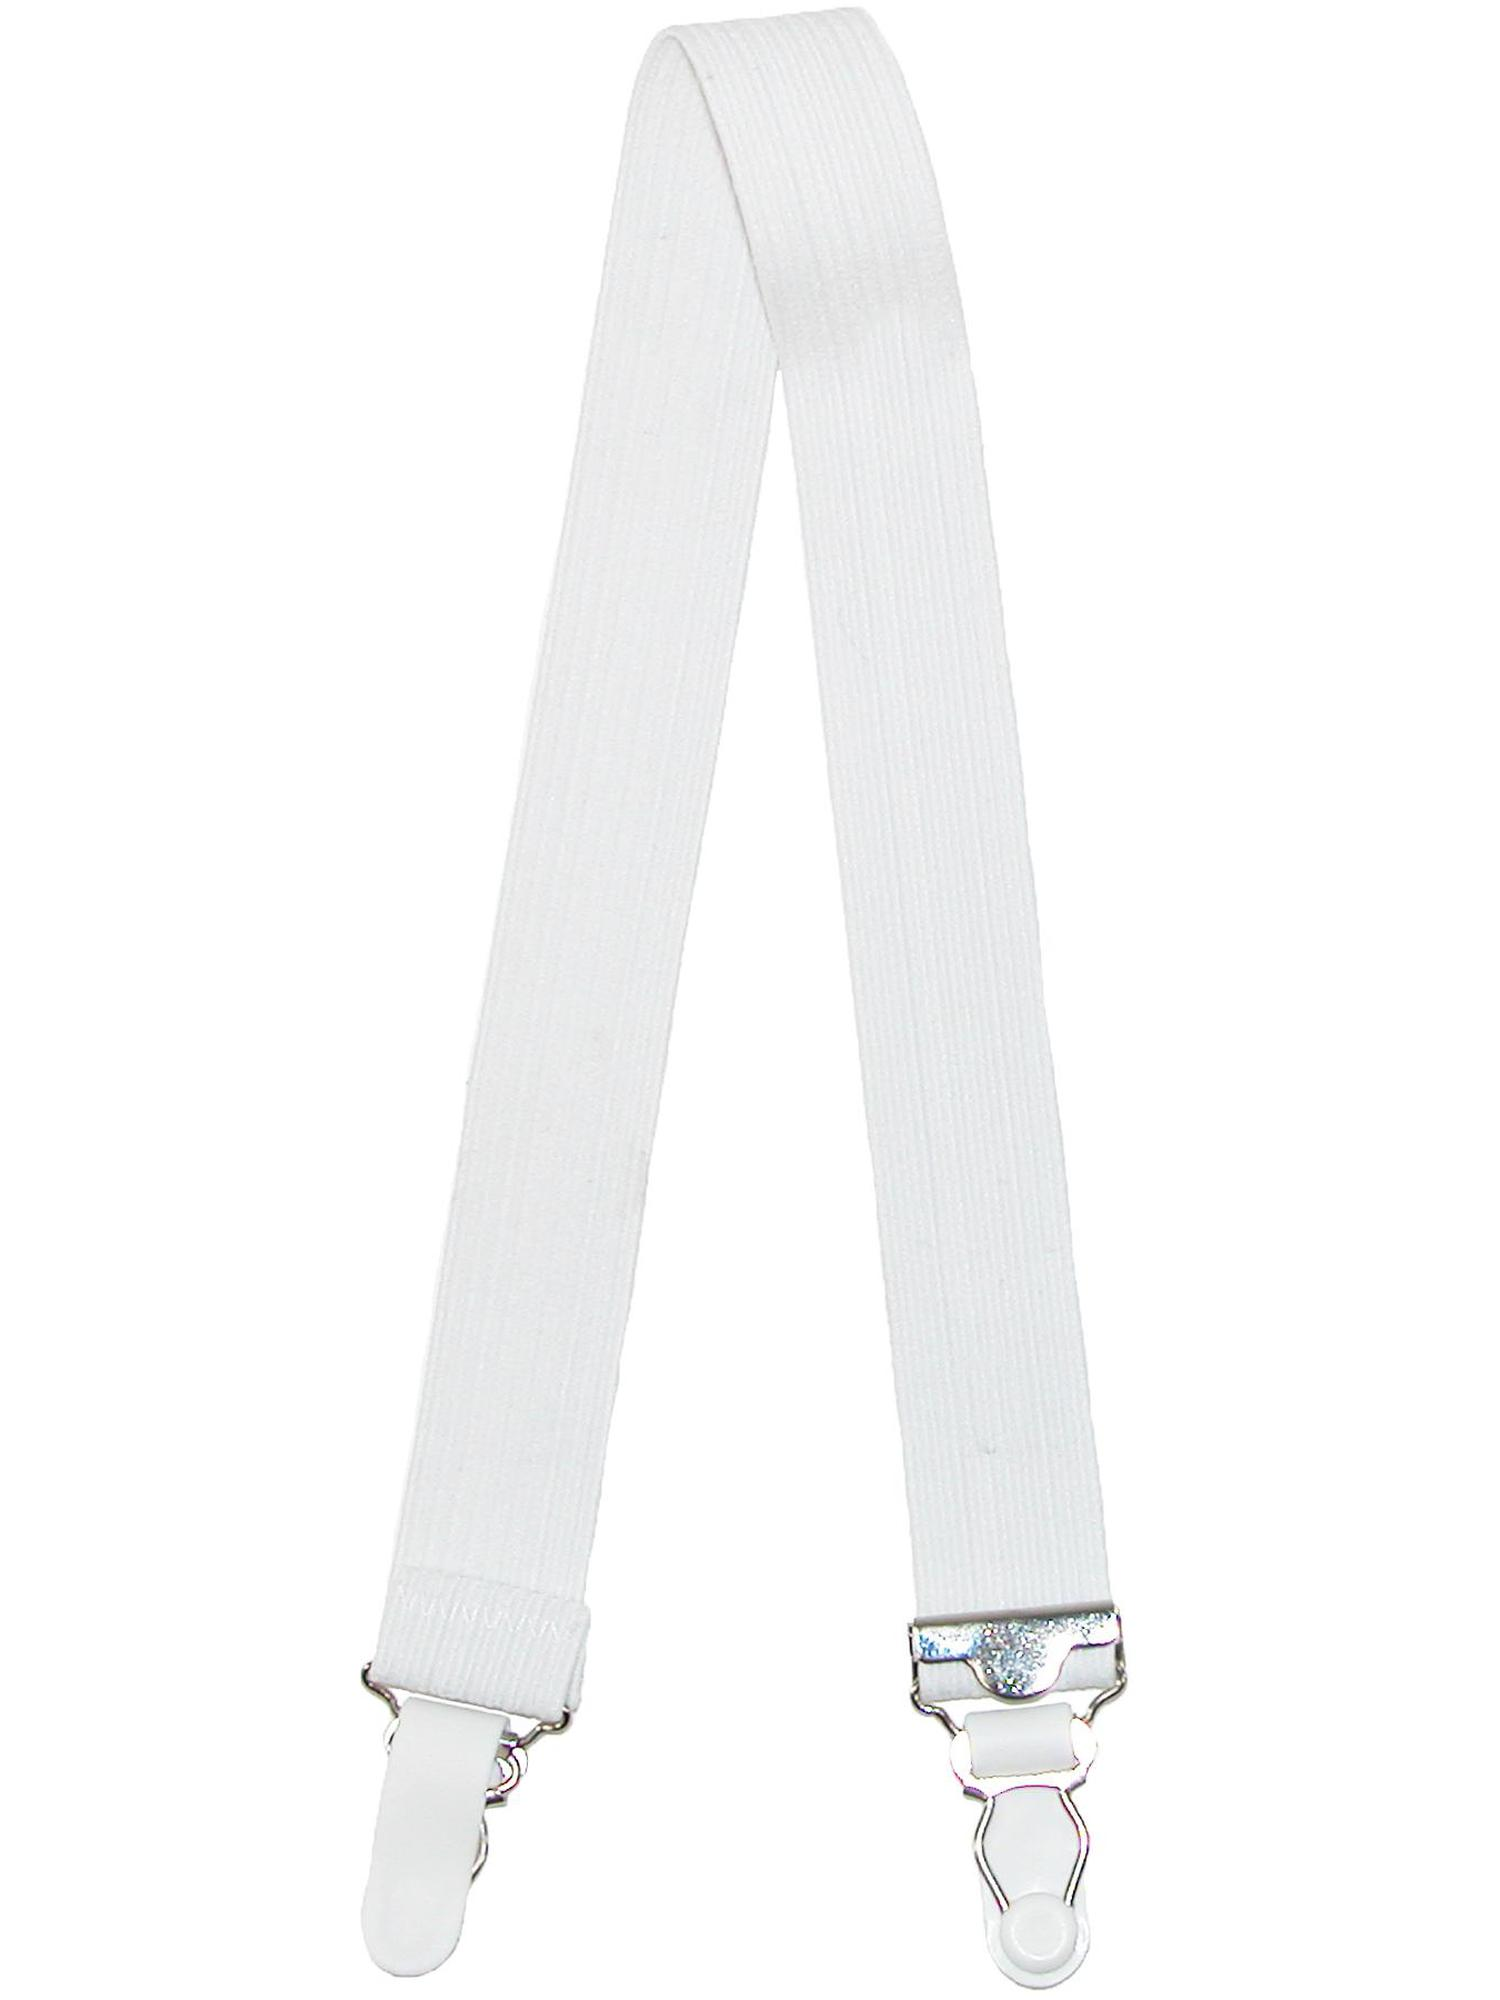 Made in the U.S.A.! White Naval 4 Piece Straight Shirt Garters //Shirt Stays